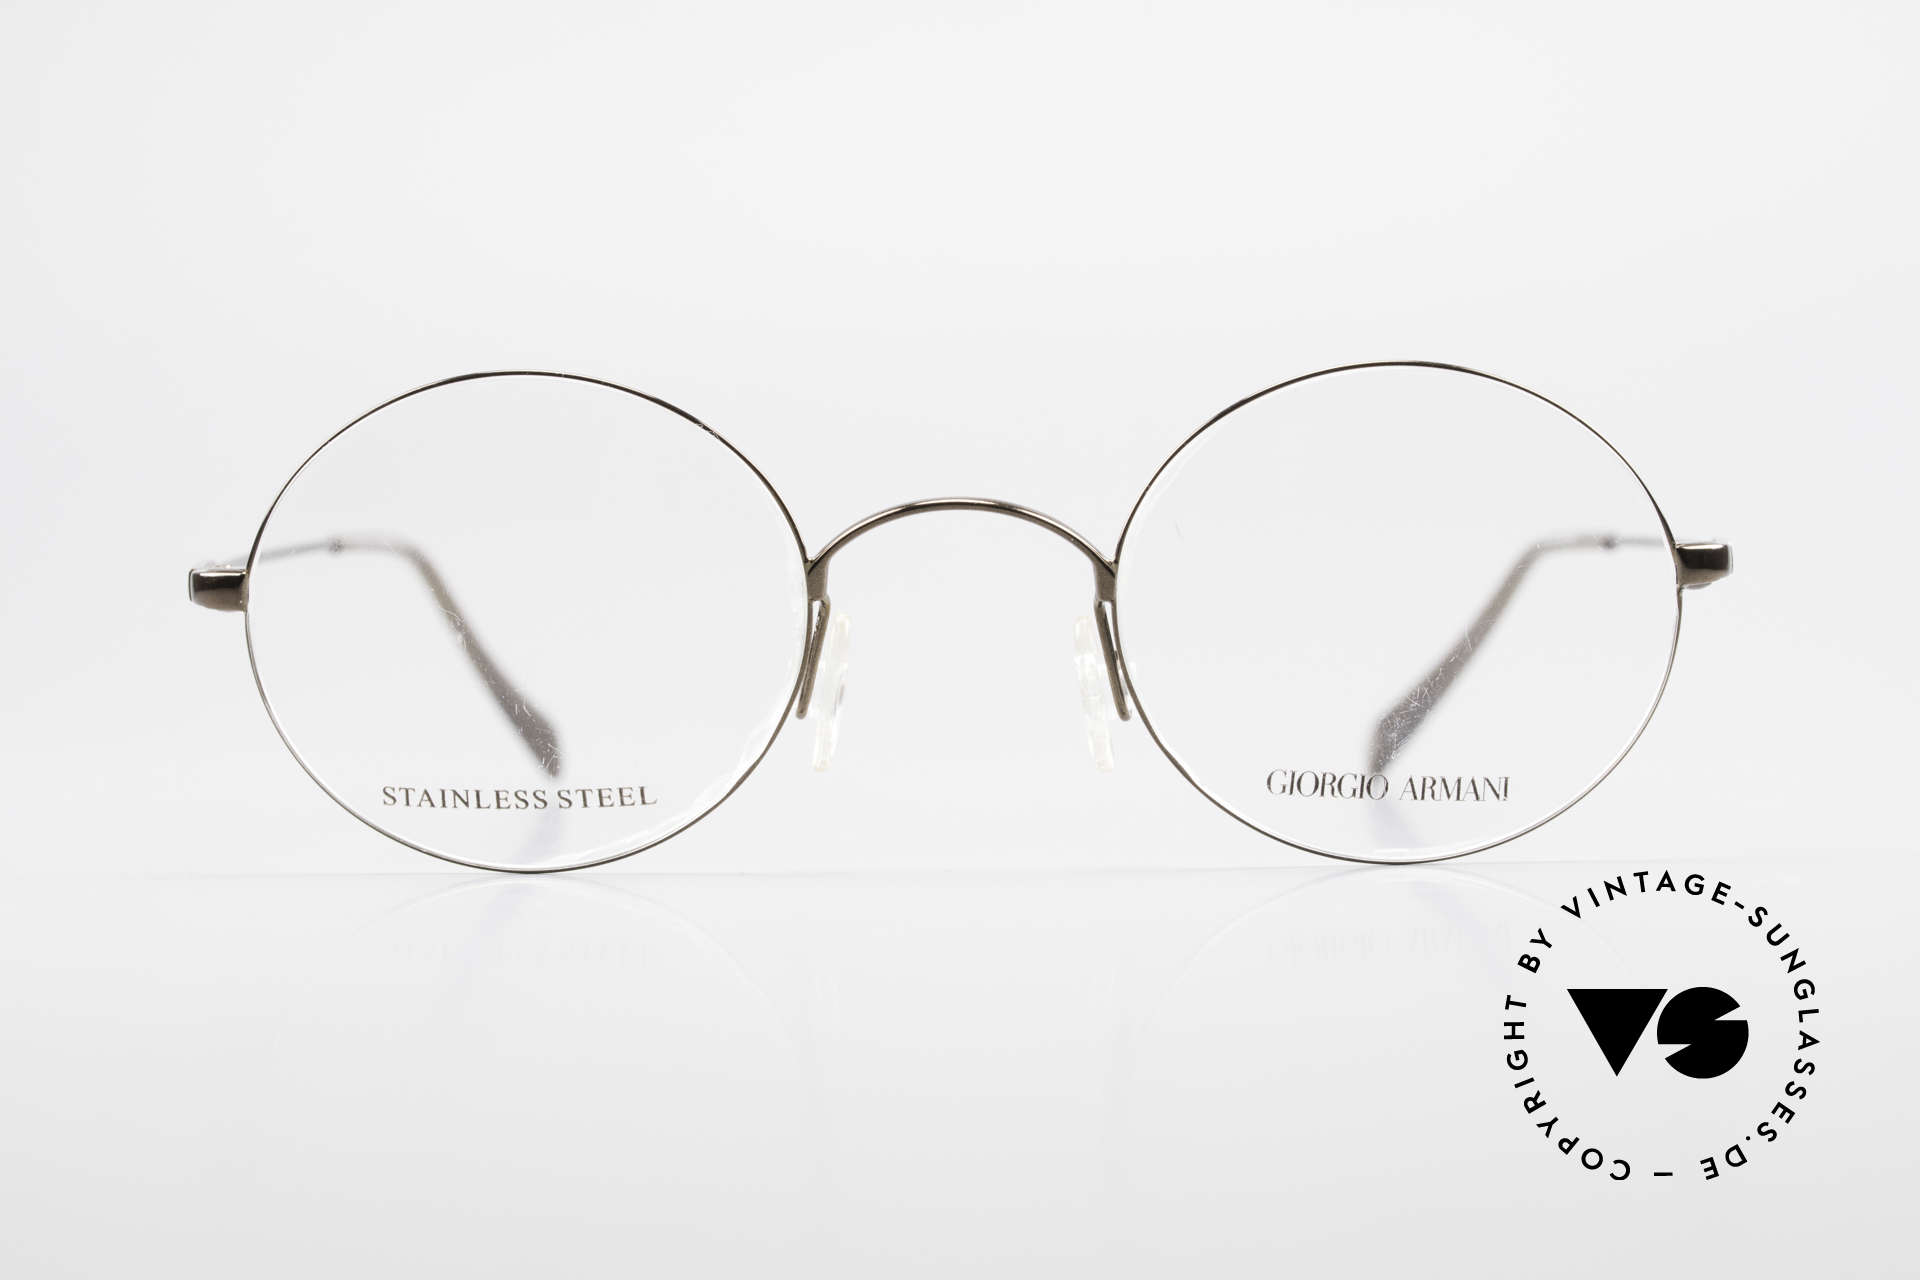 Giorgio Armani 348 Round Vintage 90's Eyeglasses, a true classic in design & coloring (timeless elegant), Made for Men and Women